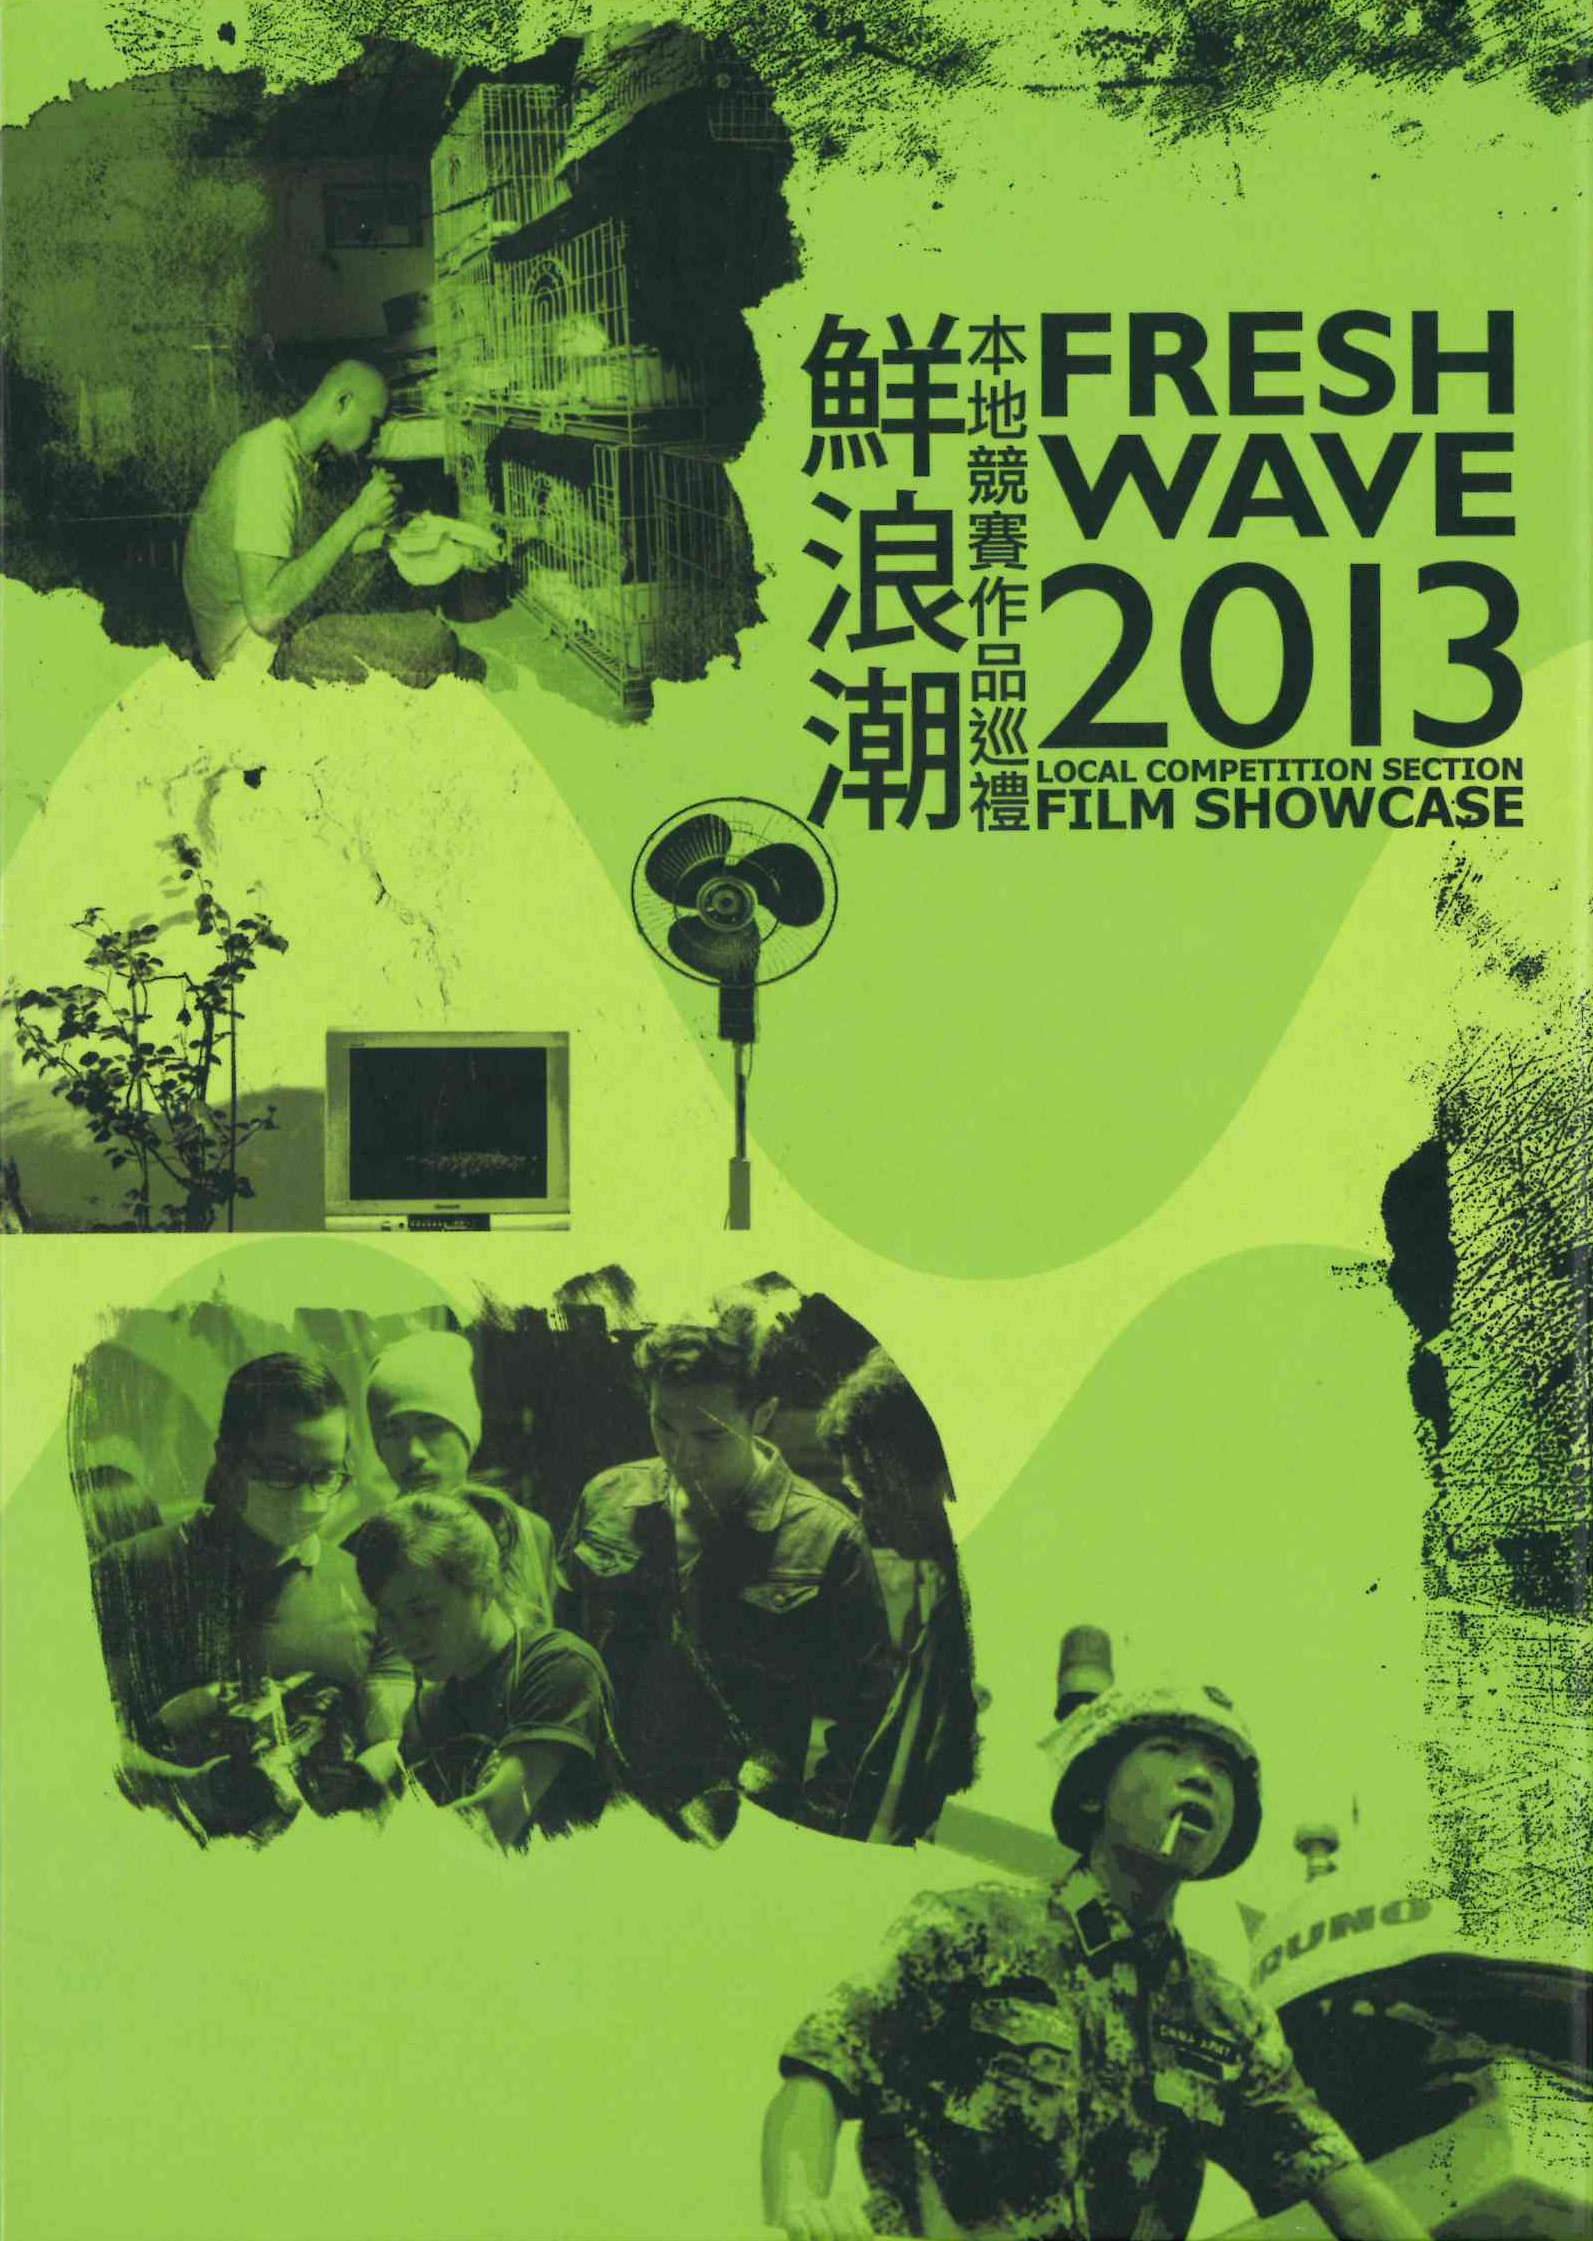 鮮浪潮2013本地競賽作品巡禮 /  Fresh Wave Short Film Competition (8th: 2013: Hong Kong, China)